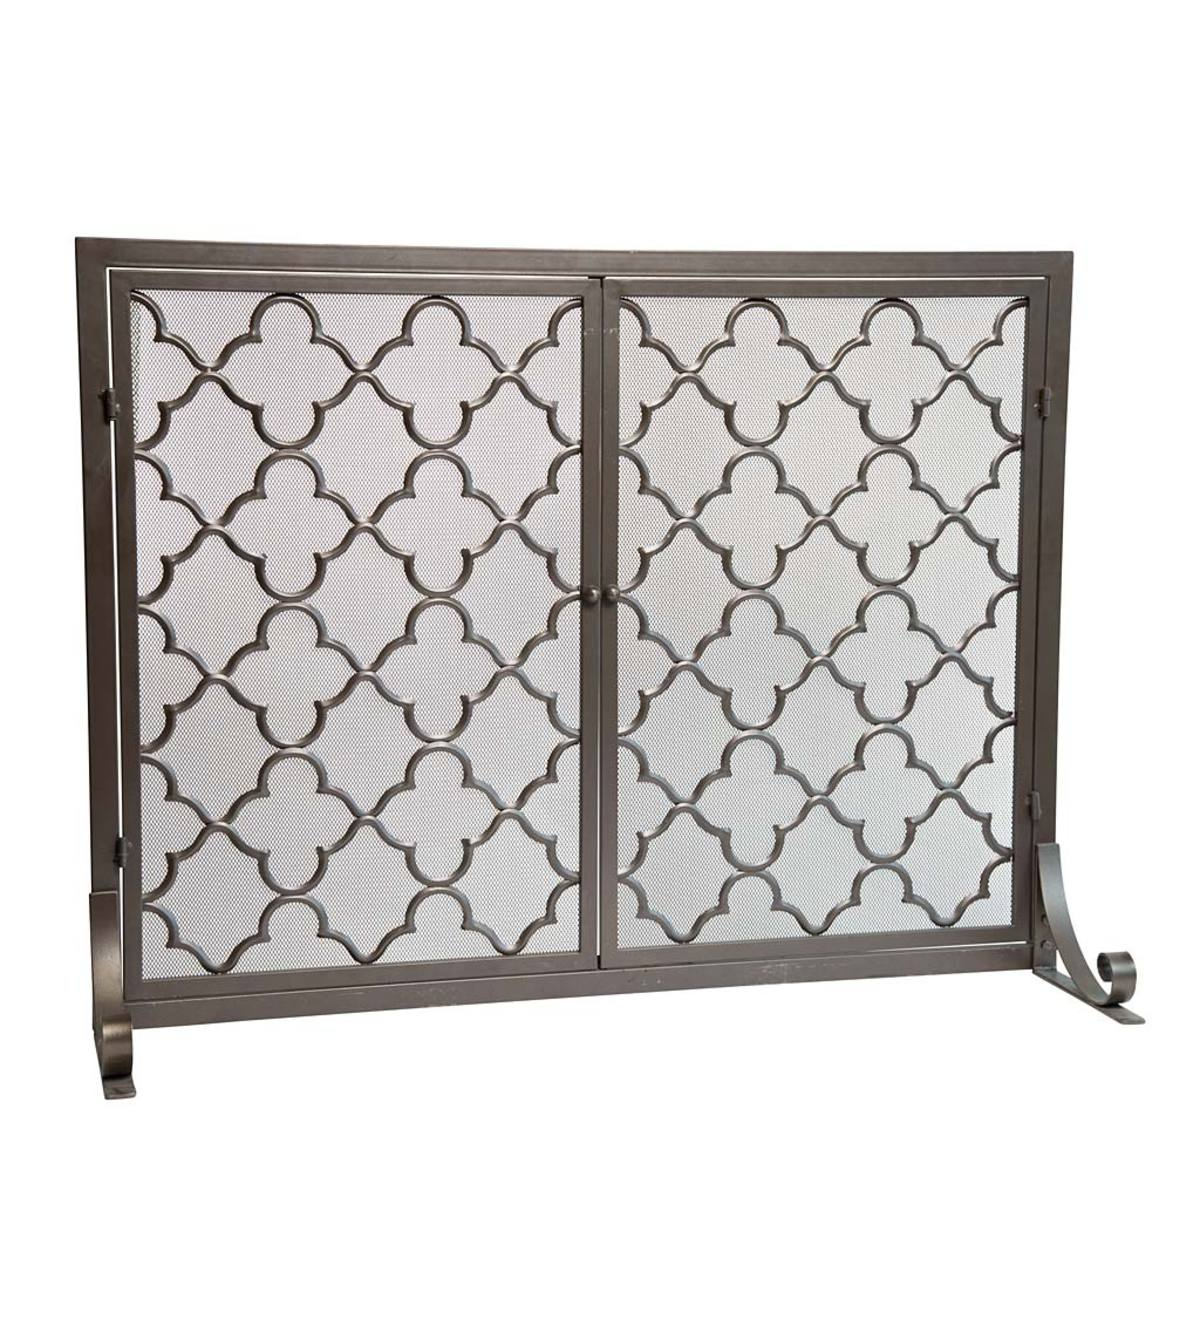 "Small Geometric Screen with Doors, 38""W x 31""H - Bronze"